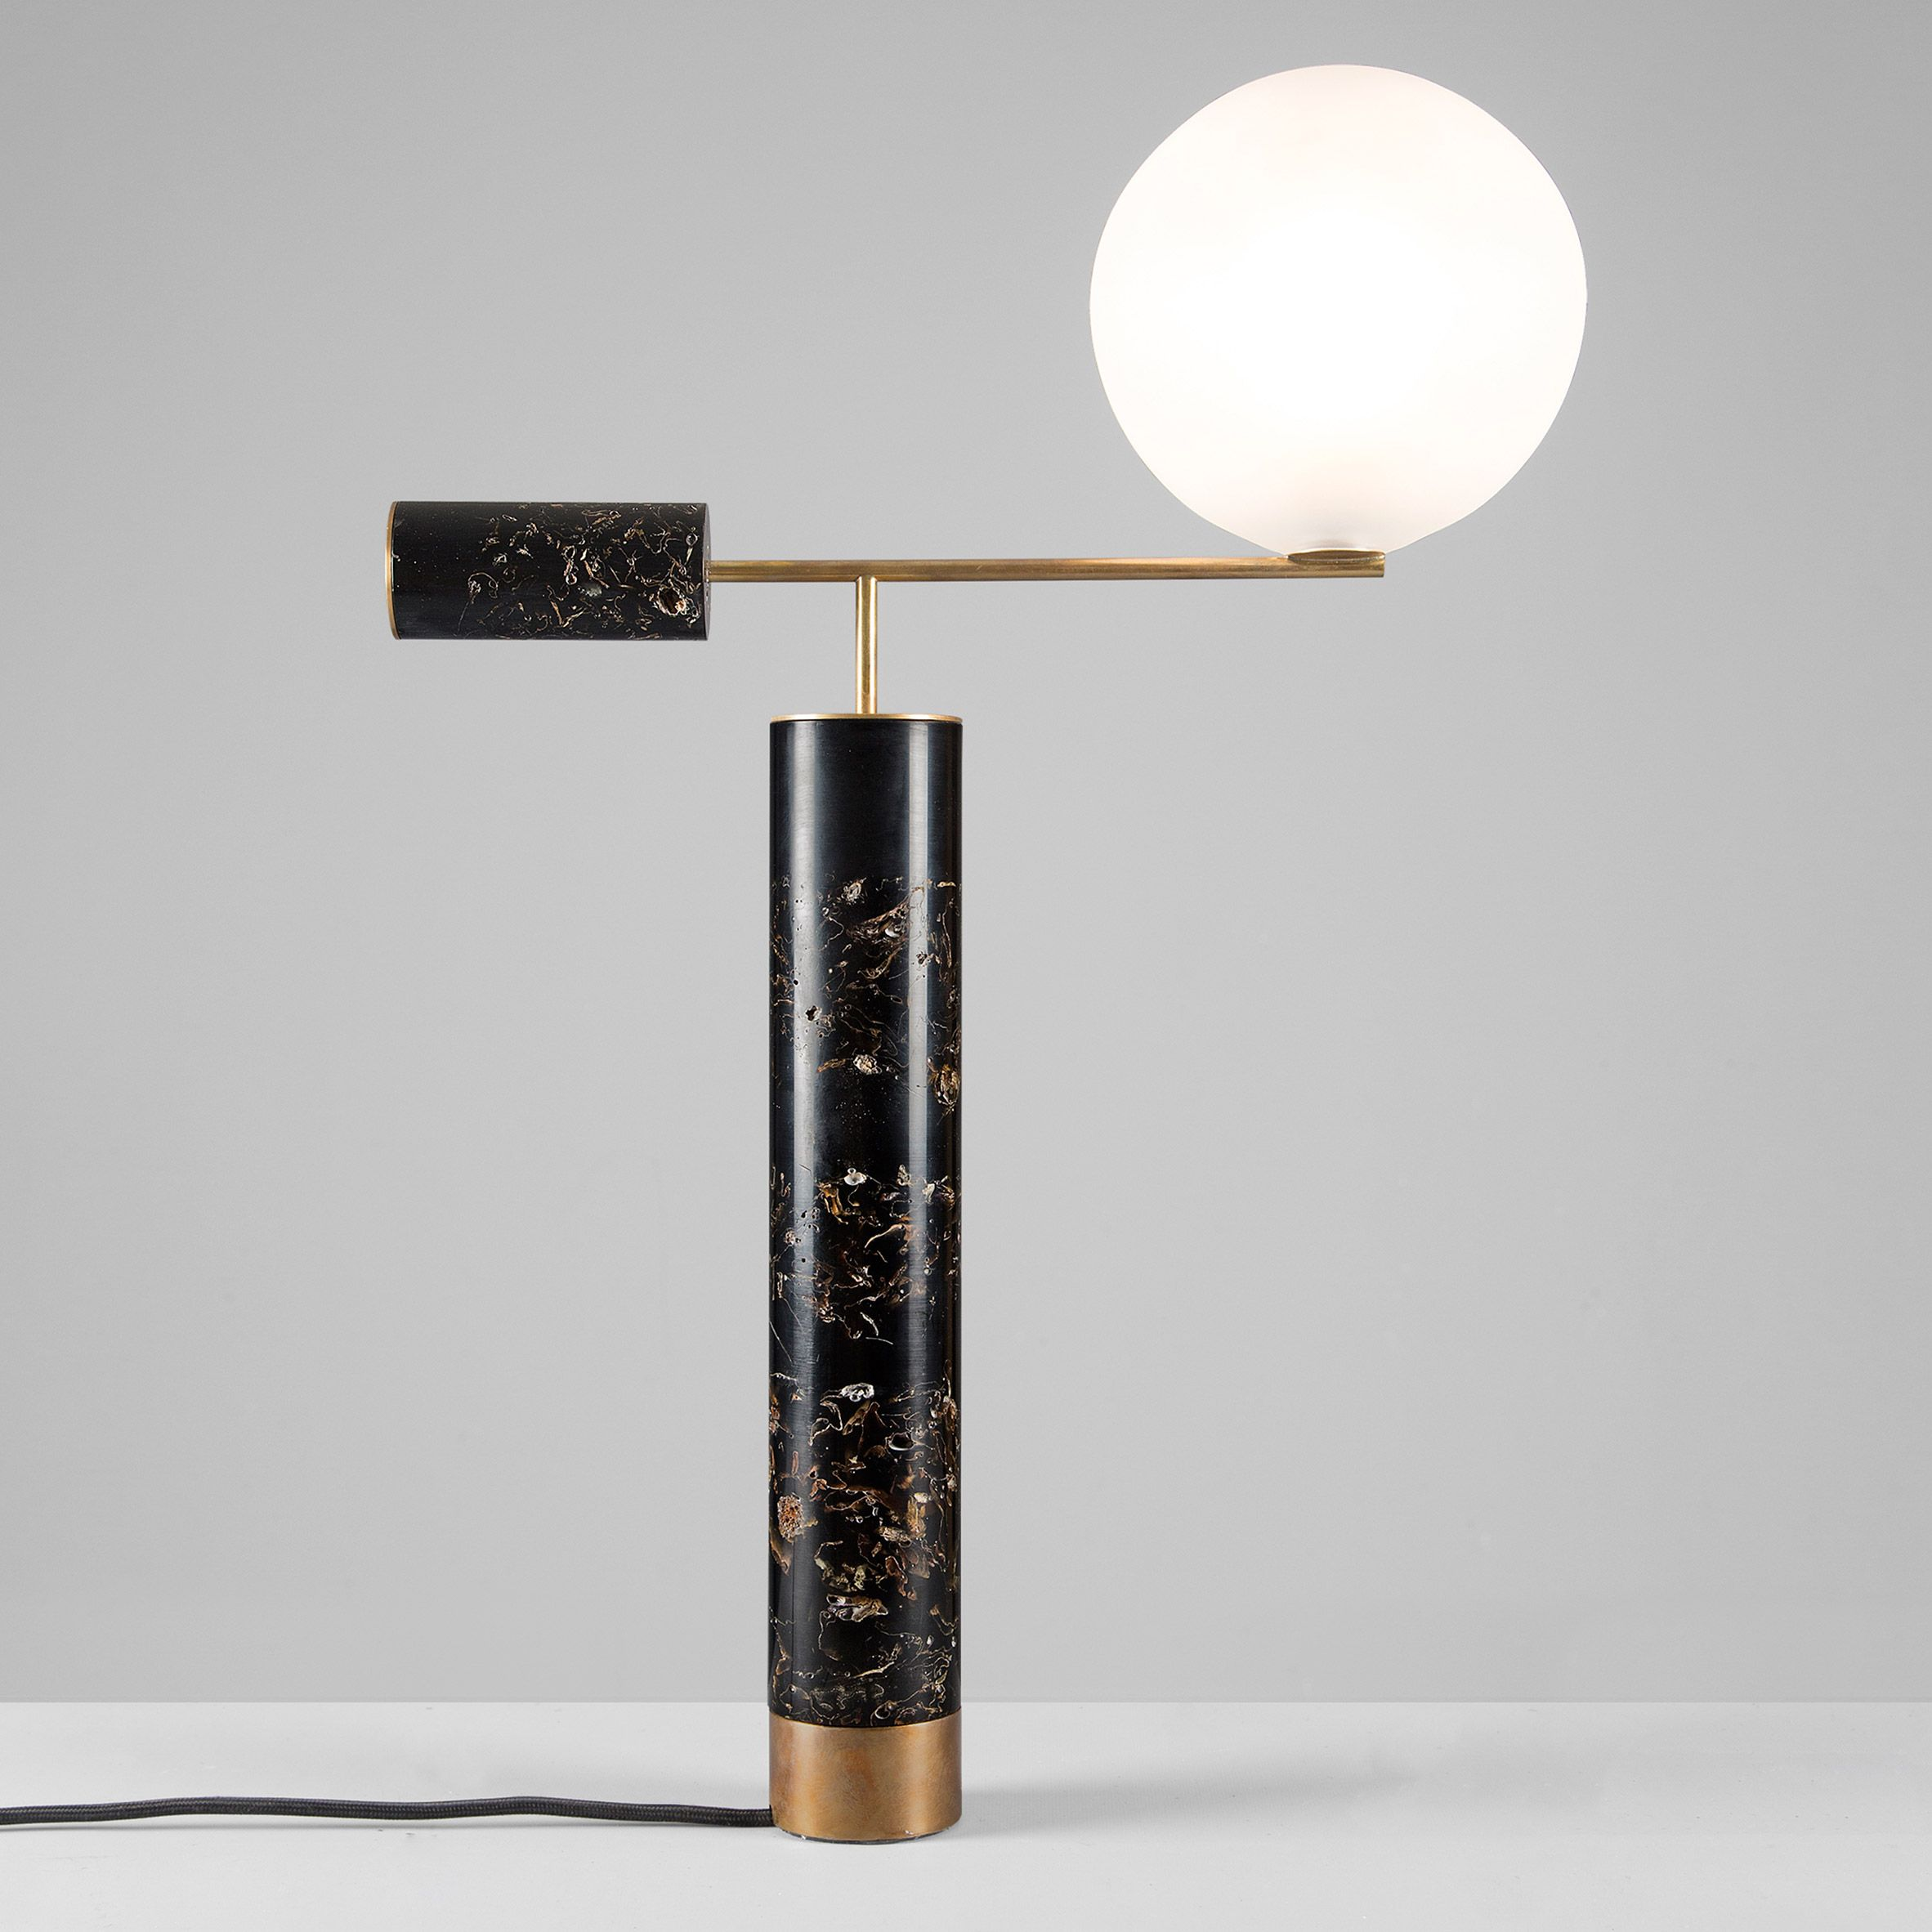 craft flora pin pavilion lamp from british marcin by rusak lab nature